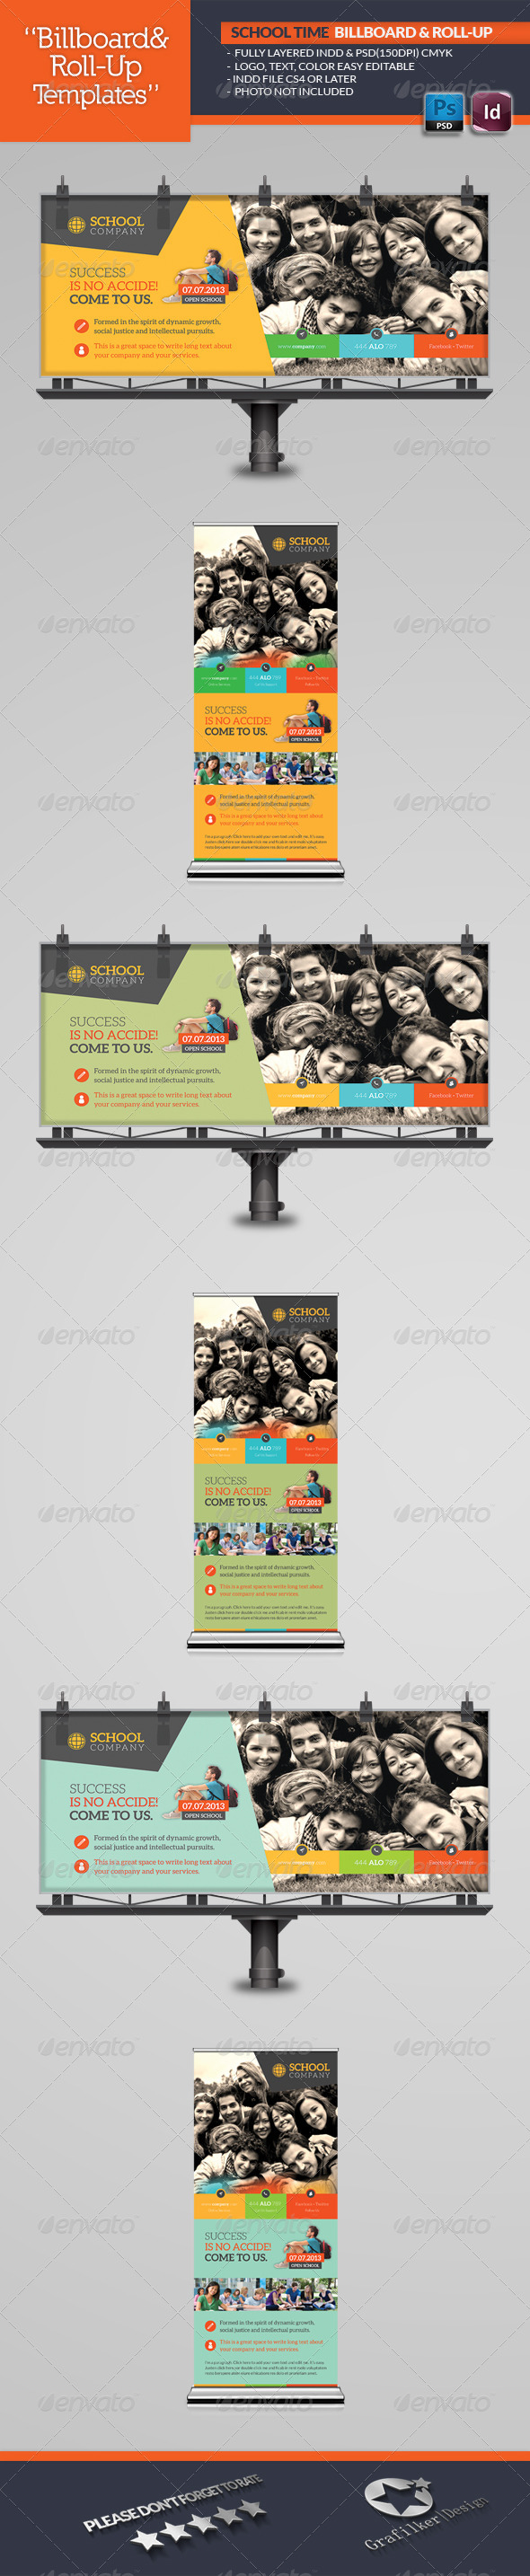 GraphicRiver School Time Billboard Roll-Up Template 5834431